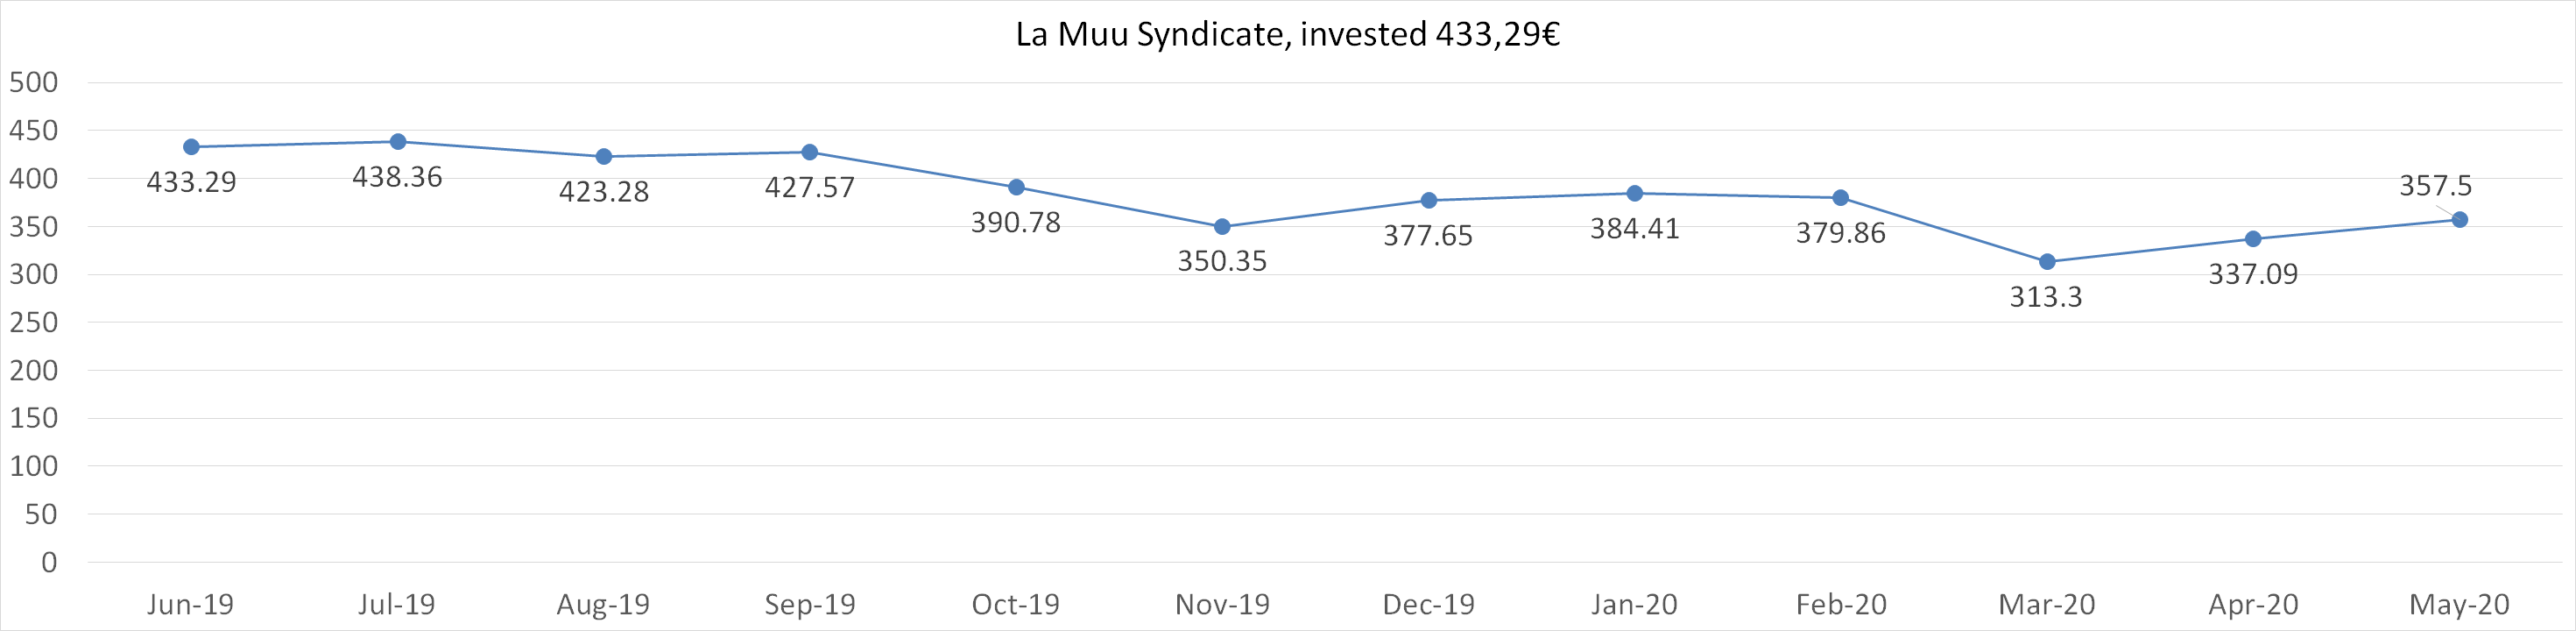 La Muu syndicate, invested 433,29 euros, may 2020